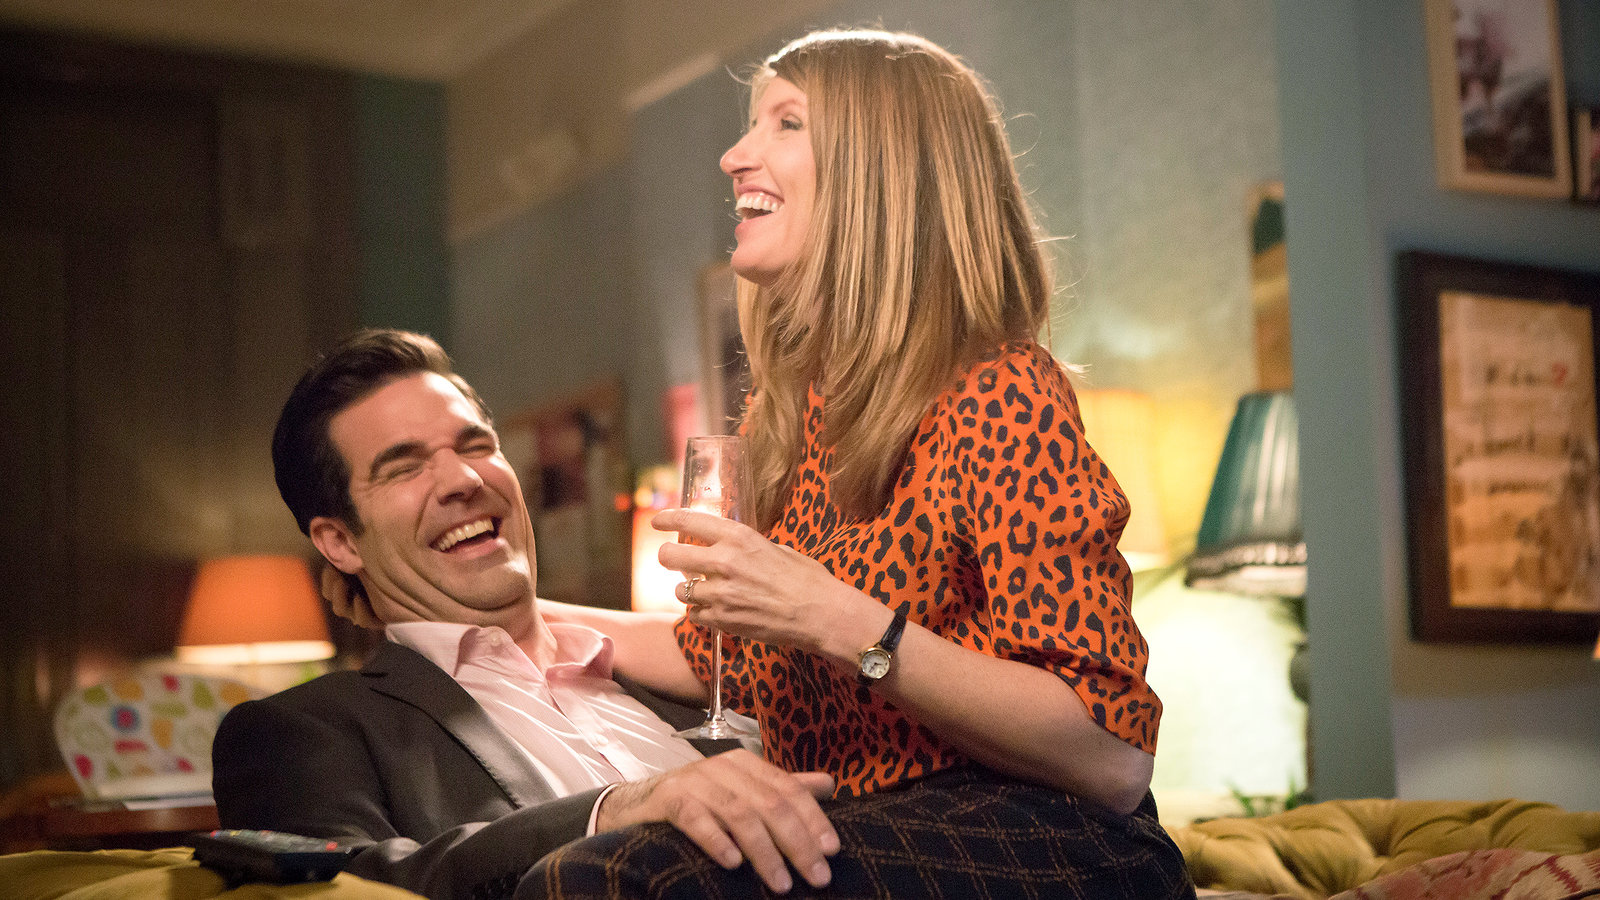 5. Rob and Sharon on 'Catastrophe'